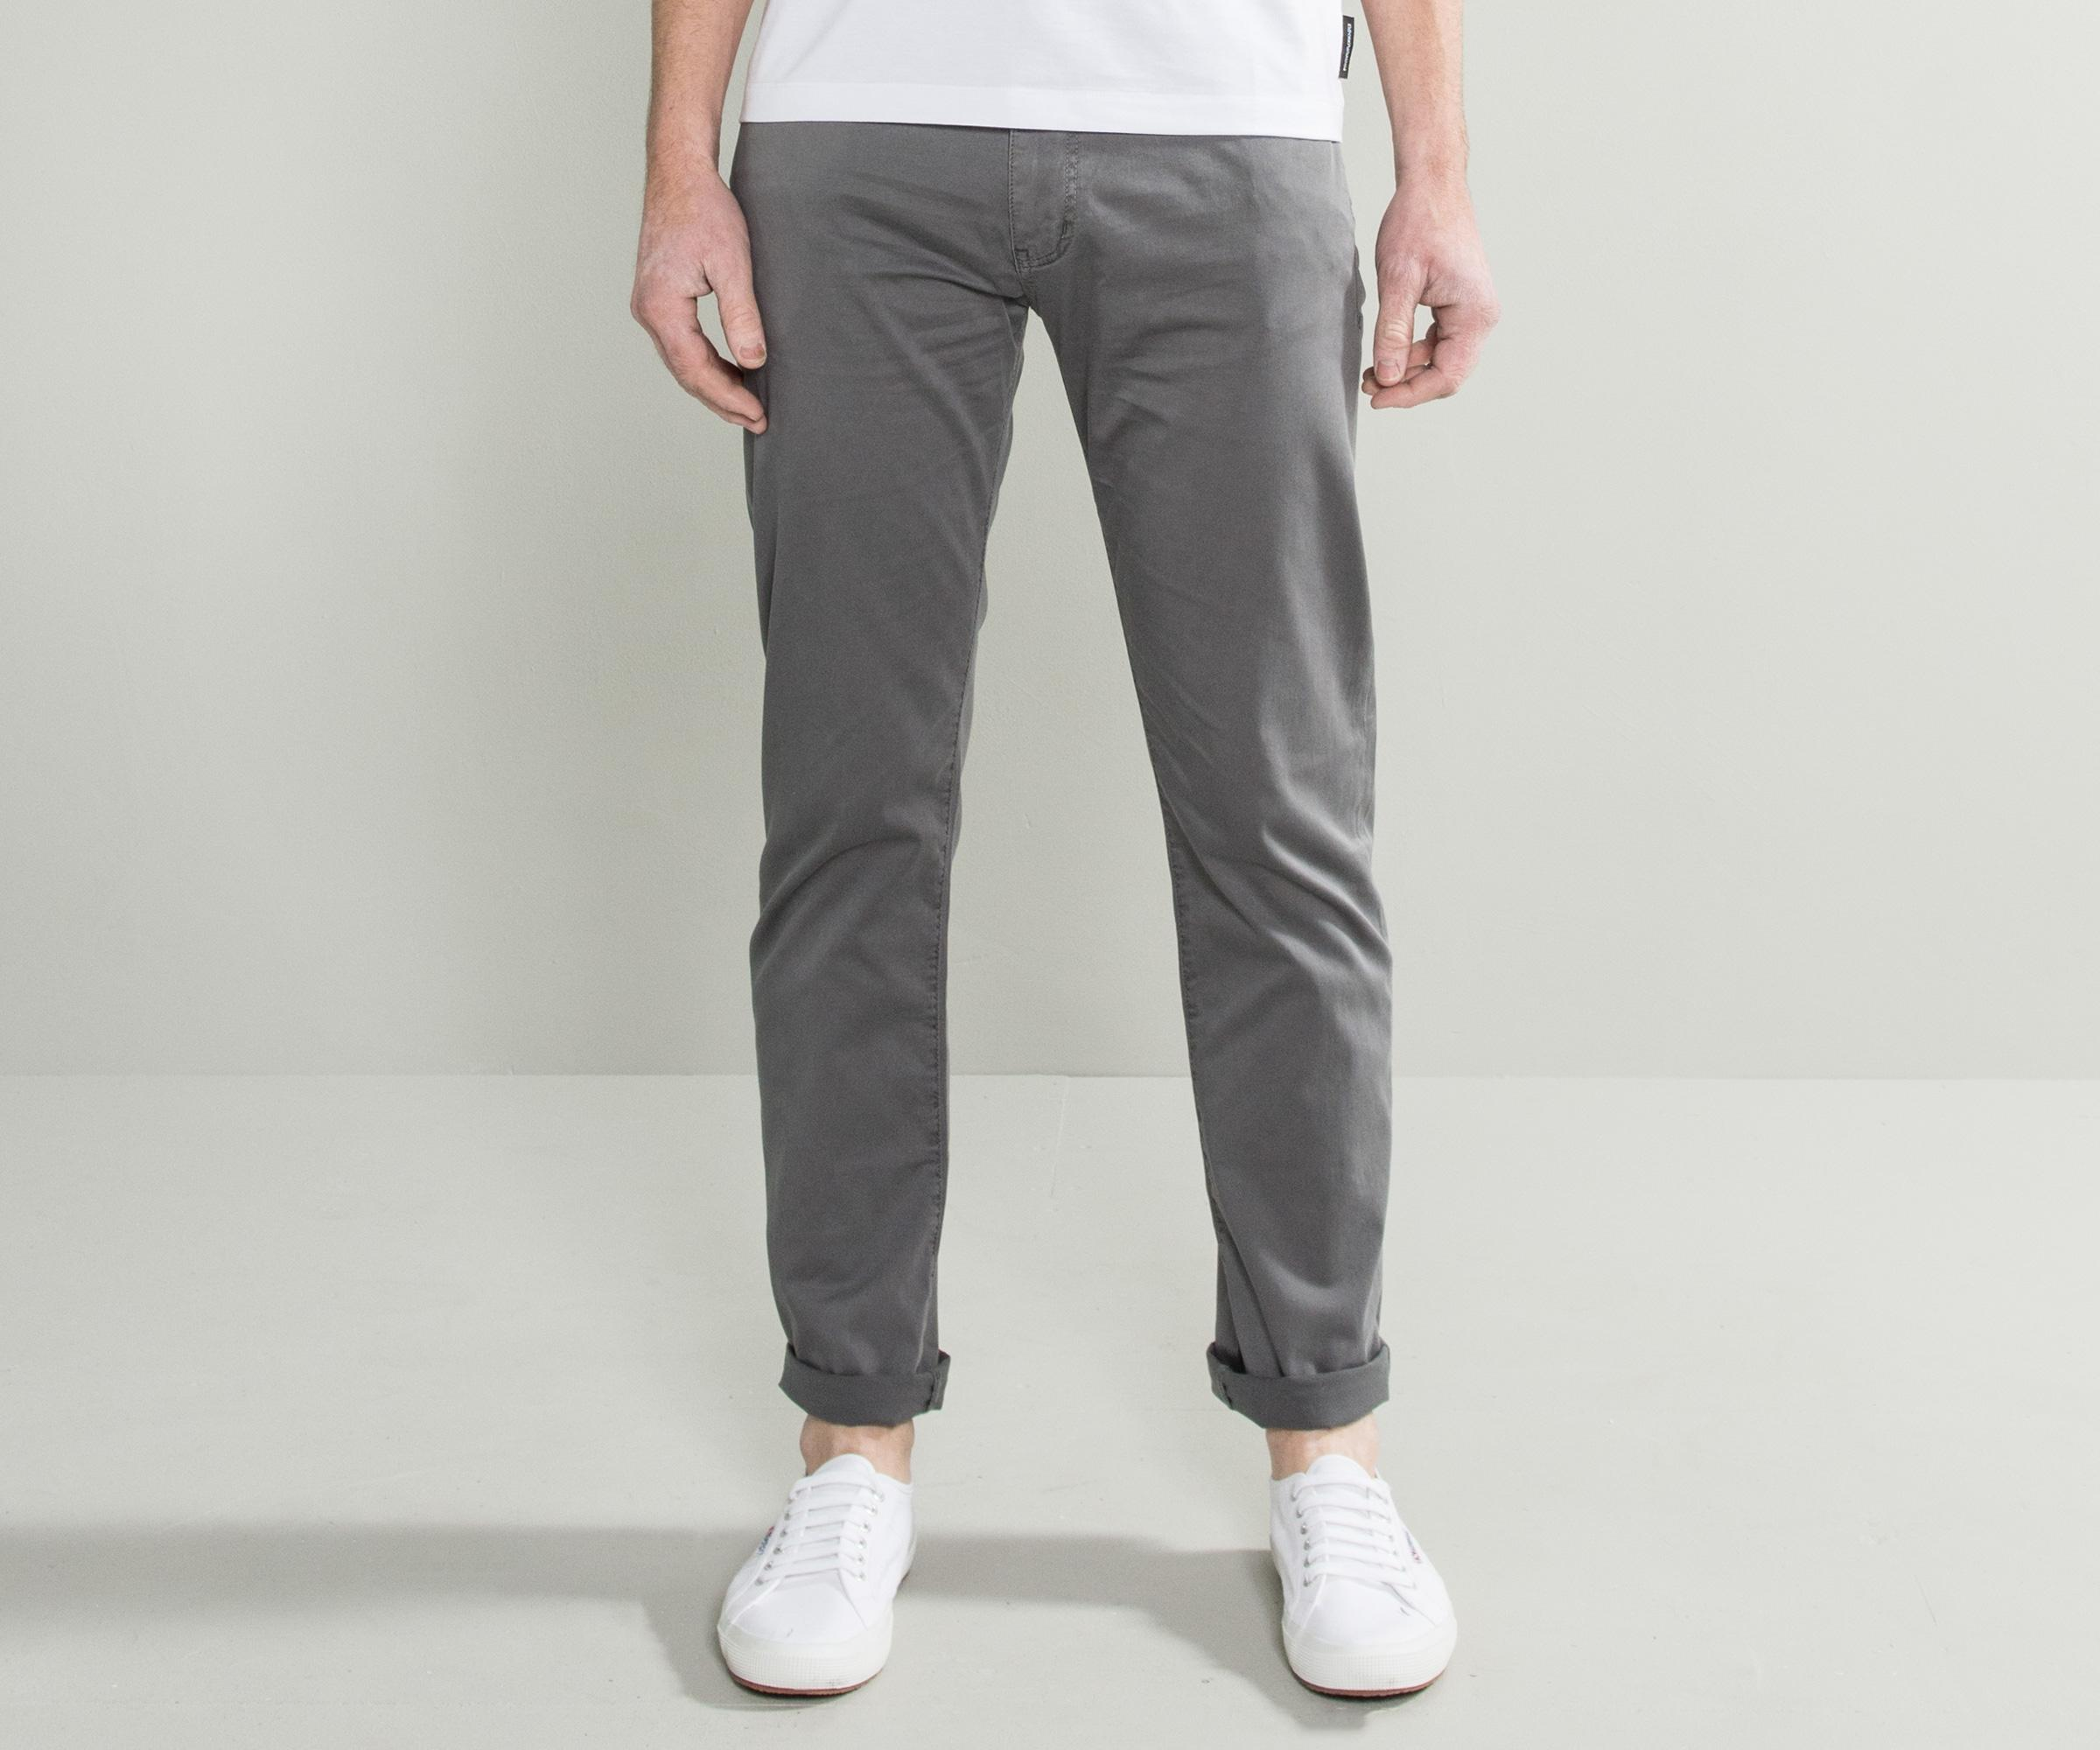 For Chino Slim Fit Jean Armani Emporio Men In Lyst Grey Gray 'j45' g6vYyb7f